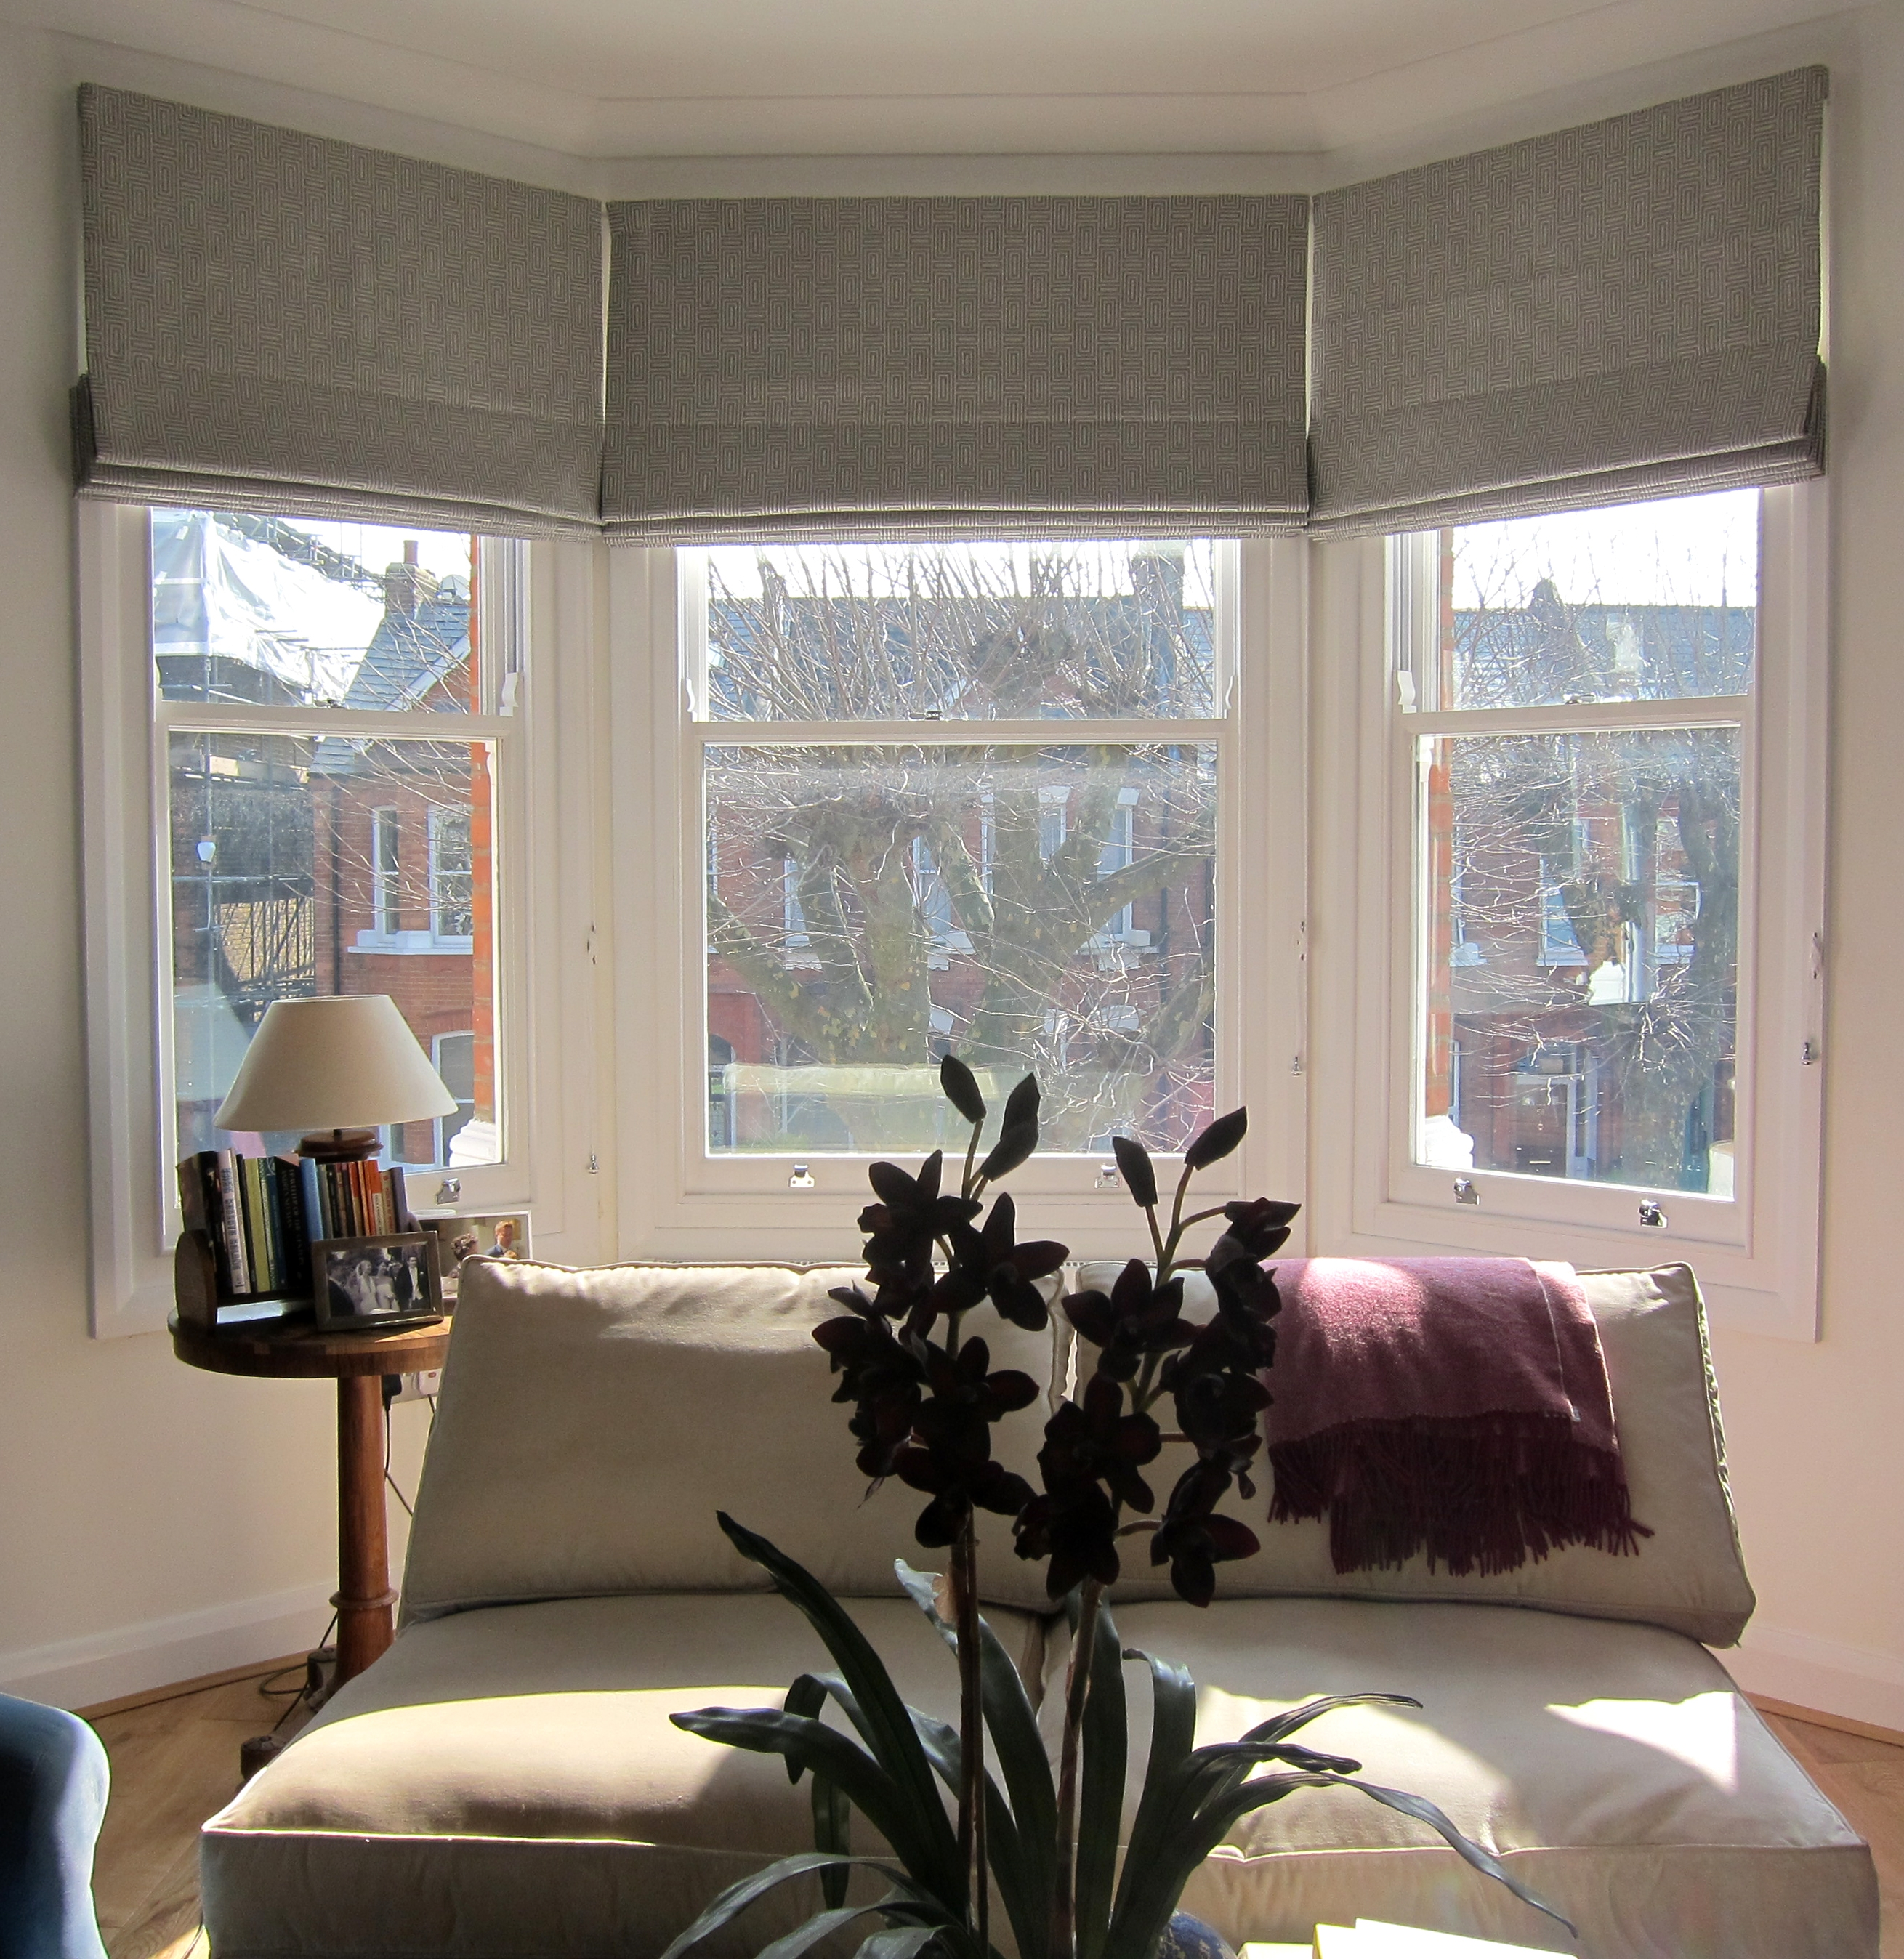 Geometric Patterned Roman Blinds In A Bay Window Could Work In Intended For Front Room Blinds (Image 8 of 15)